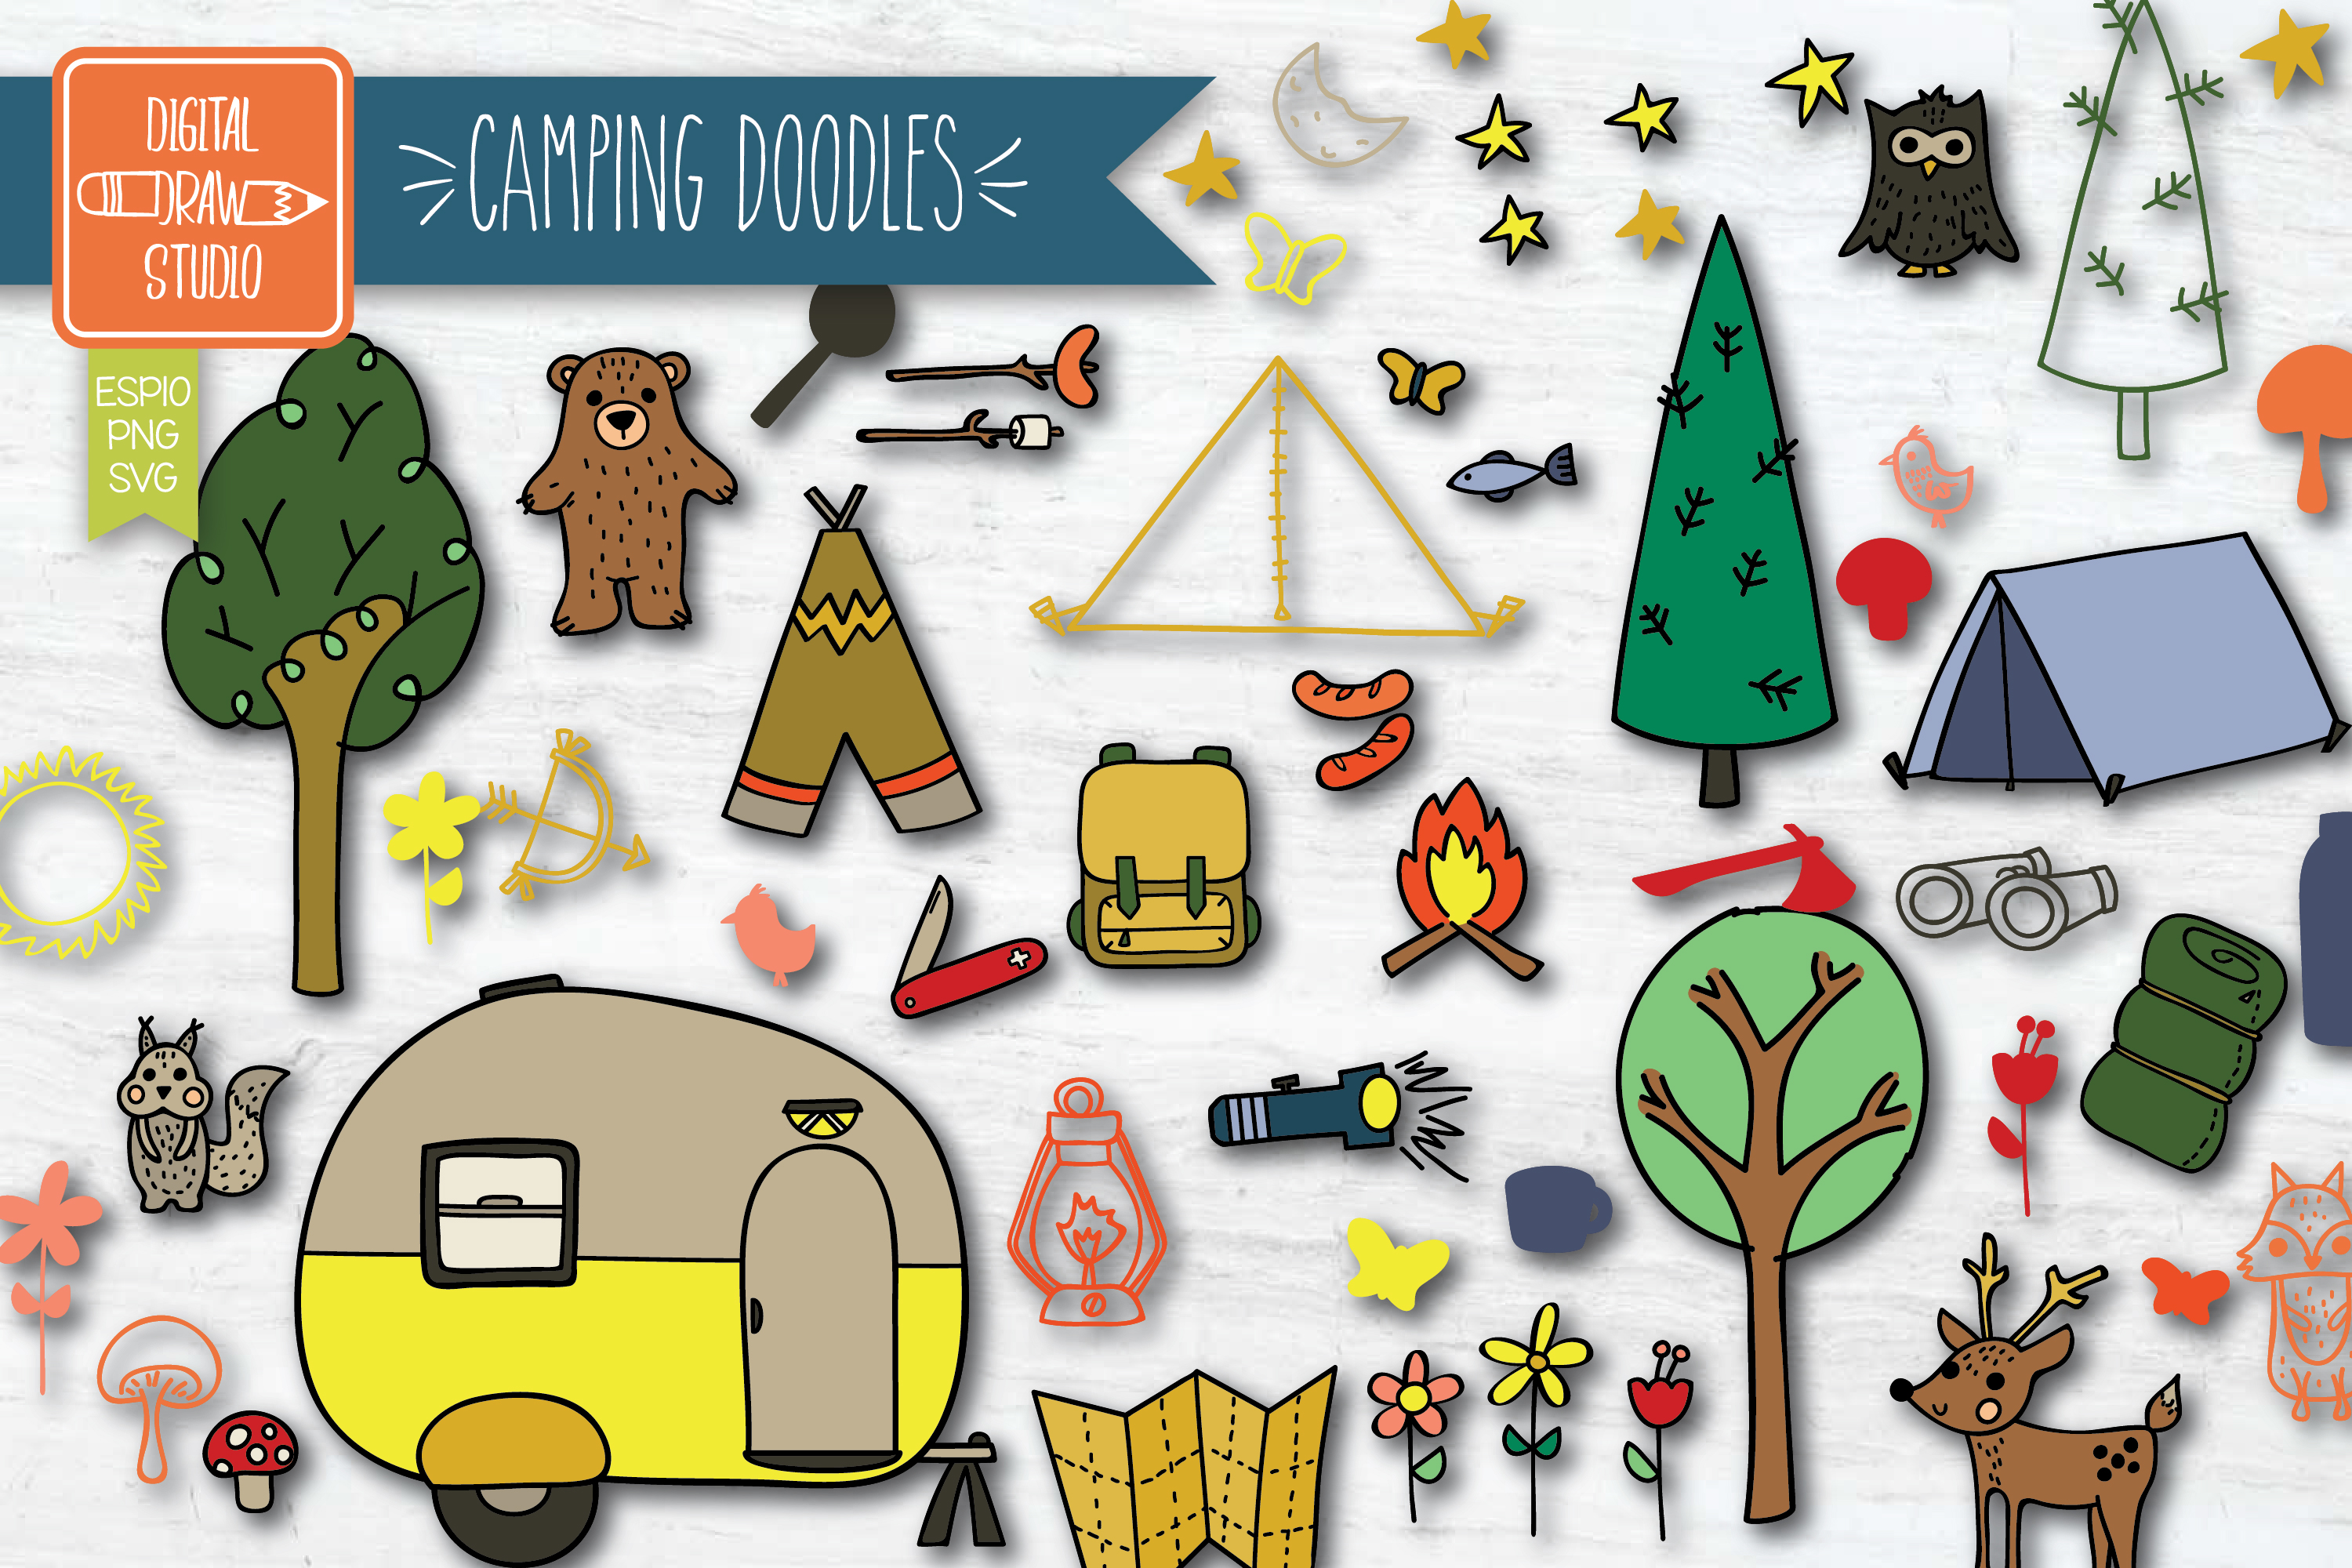 Download Free Hand Drawn Camping Colored Outdoor Graphic By Carmela Giordano for Cricut Explore, Silhouette and other cutting machines.